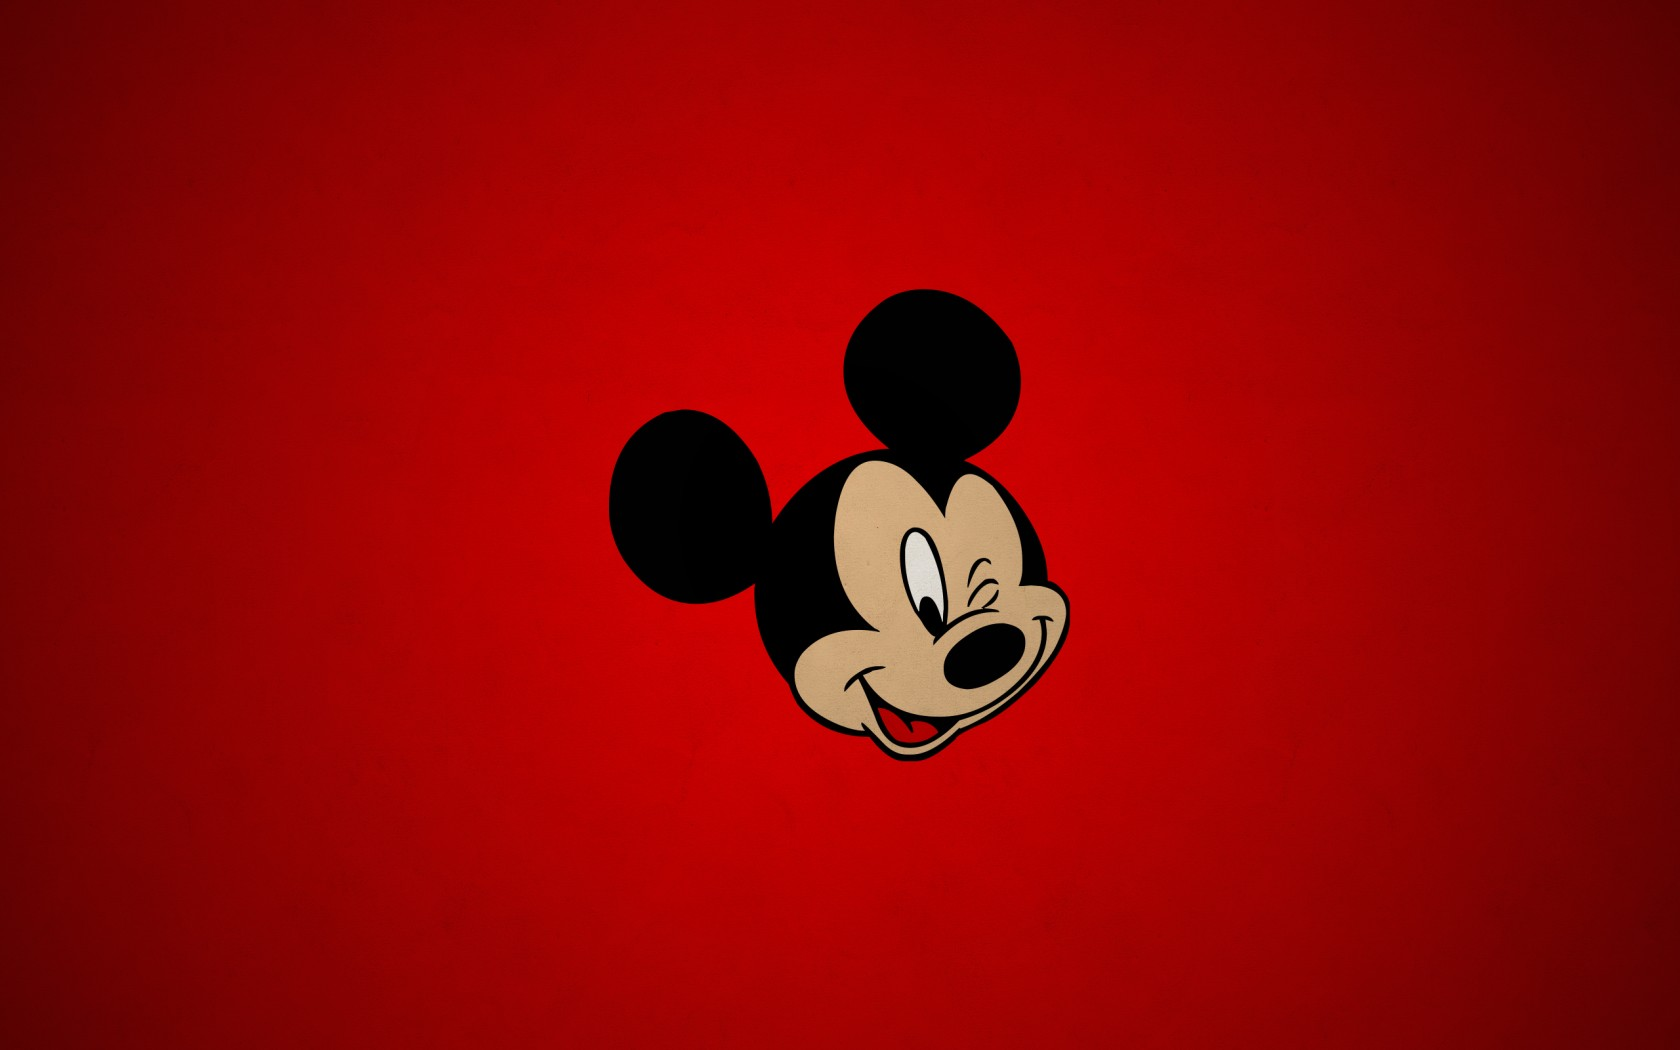 Collection Of Wallpaper Mickey Mouse On Hdwallpapers